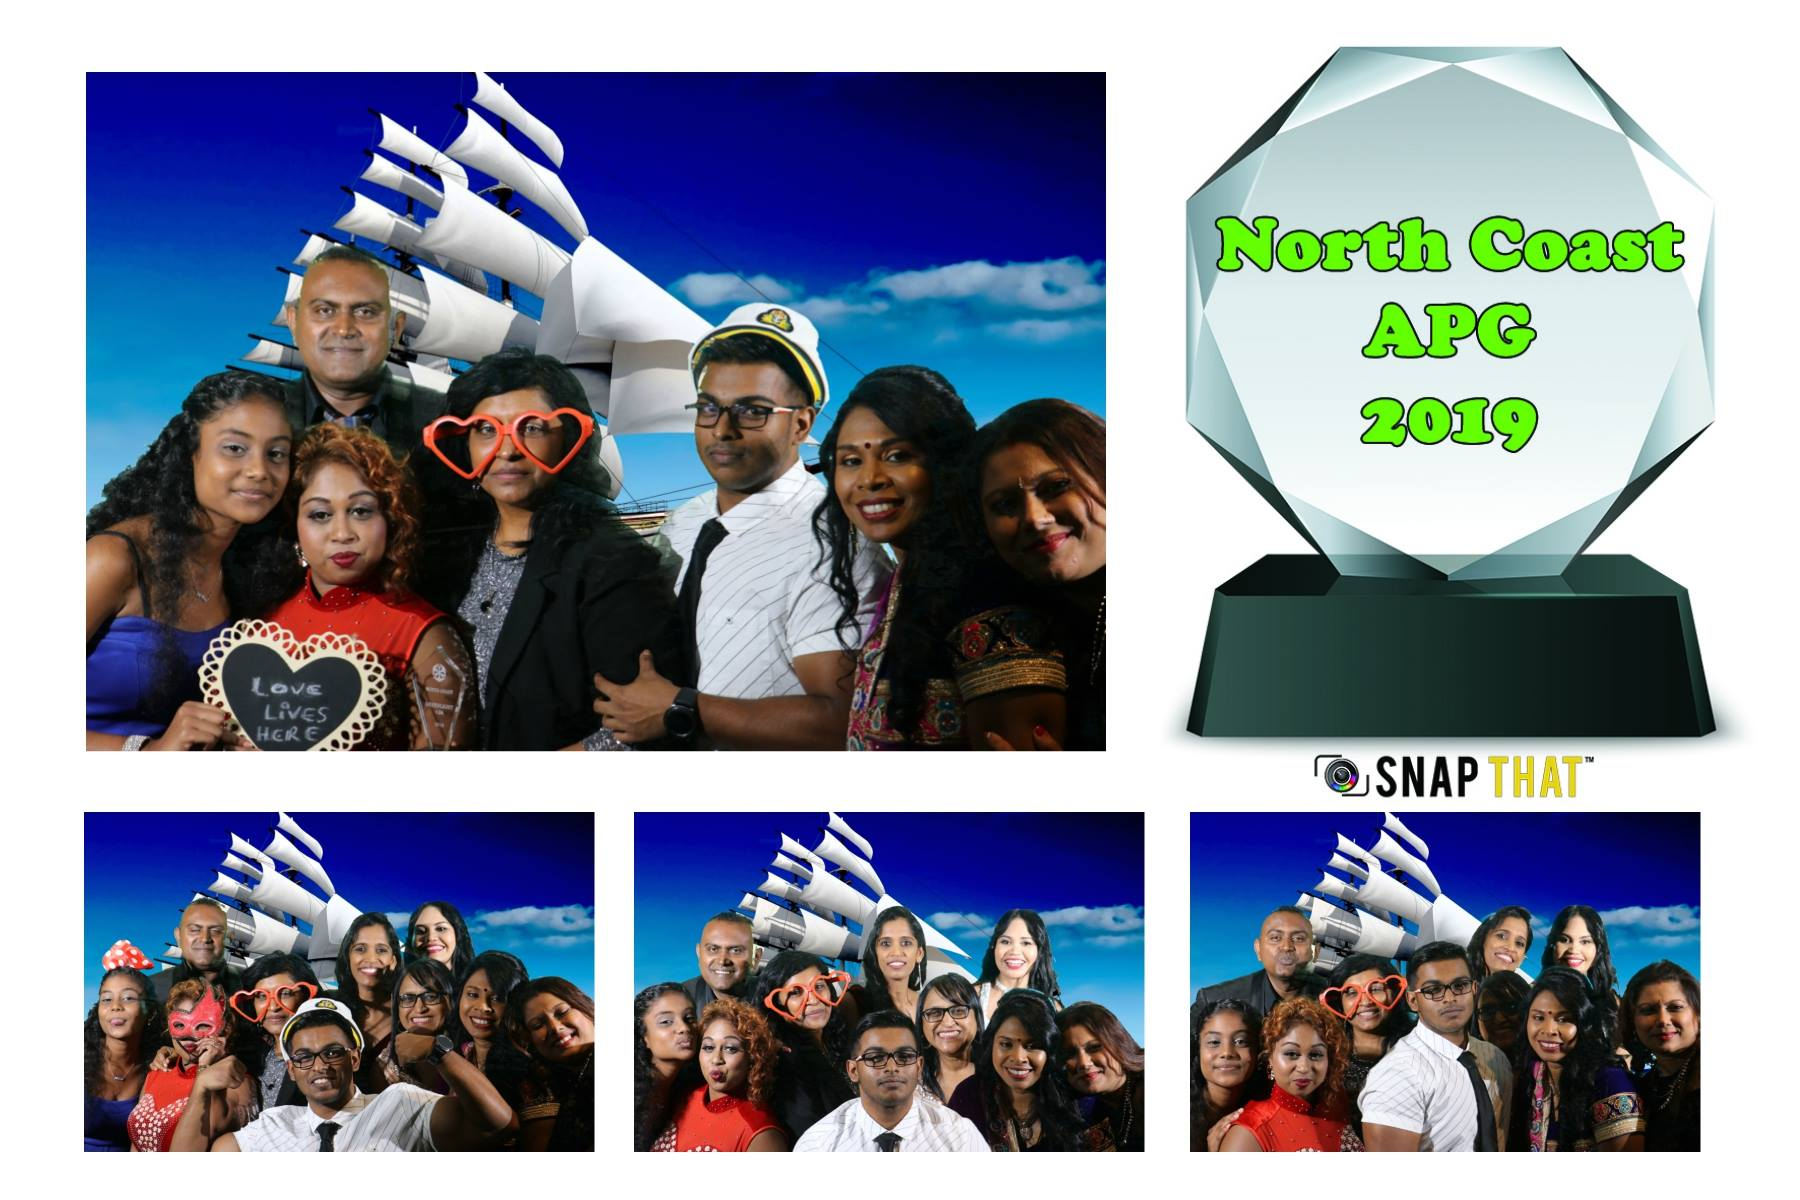 North Coast APG 2019 PhotoboothNorth Coast APG 2019 Photobooth